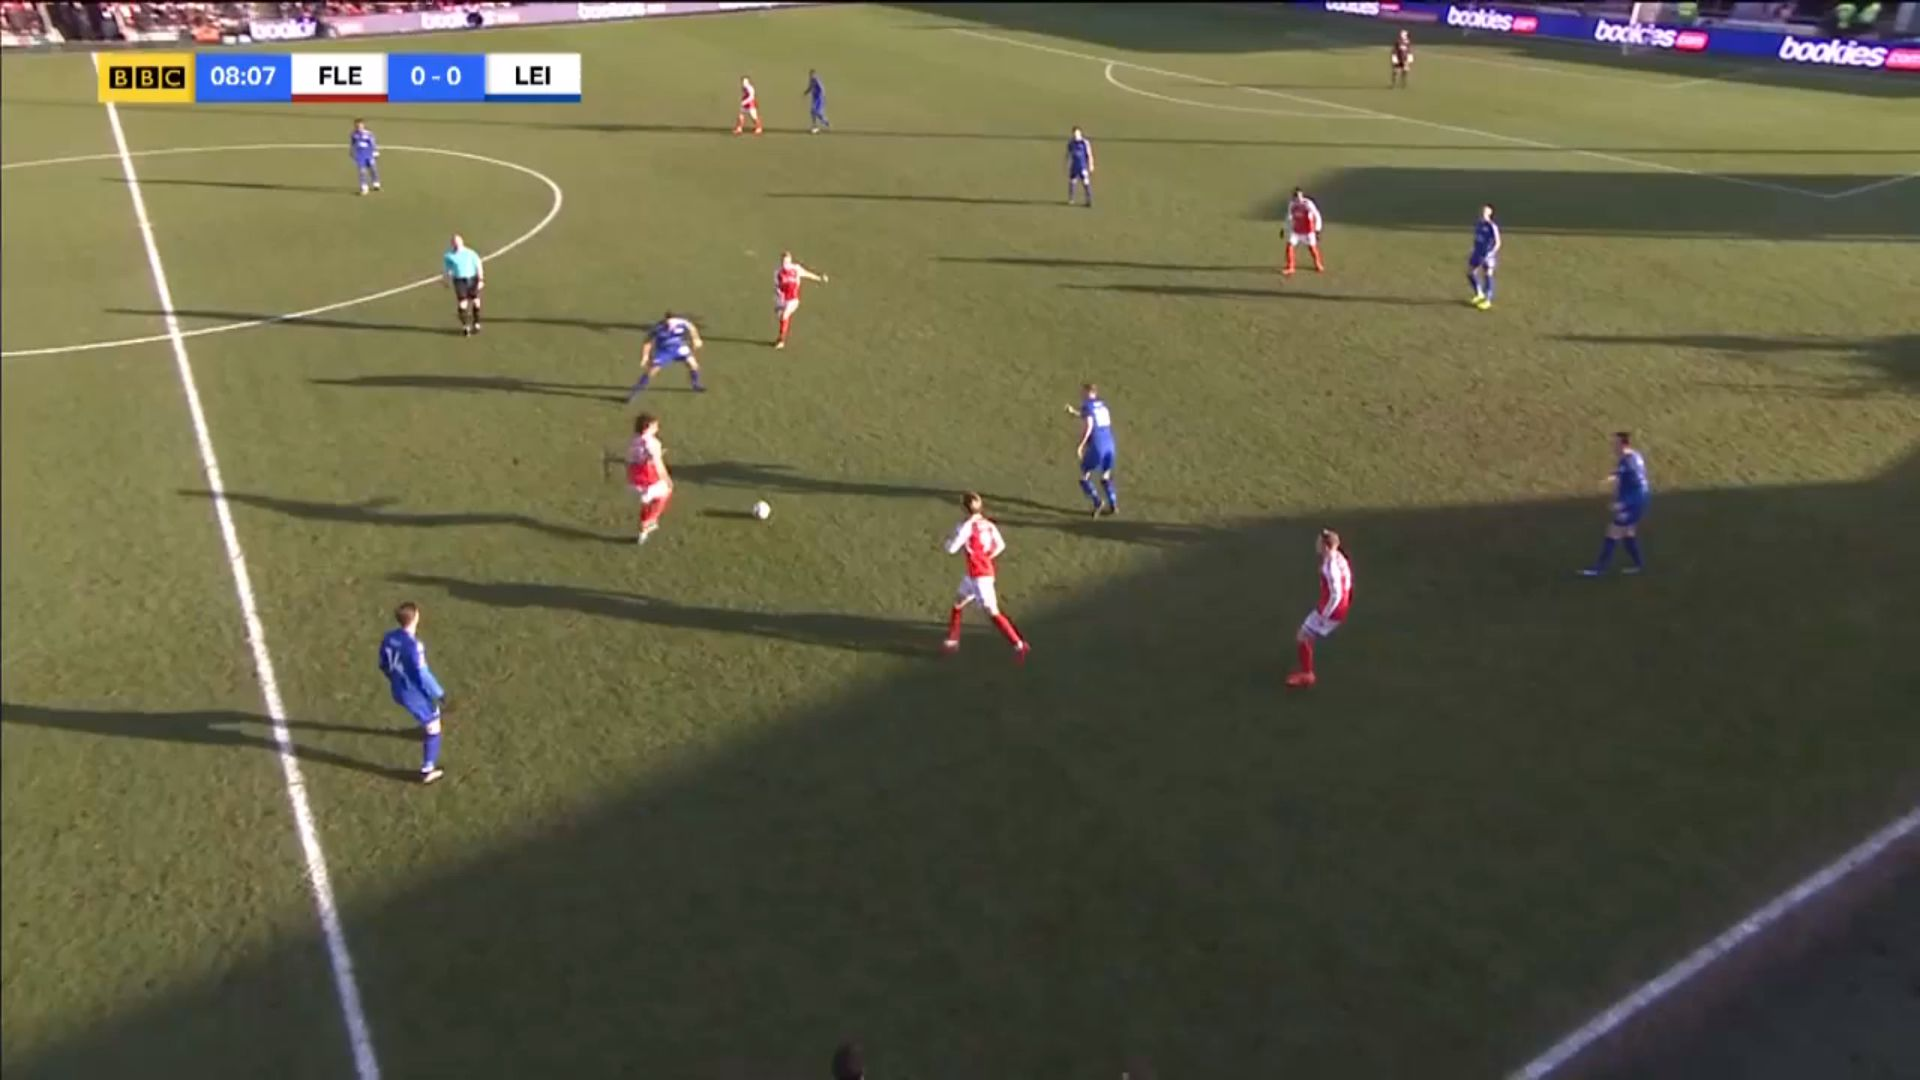 06-01-2018 - Fleetwood Town 0-0 Leicester City (FA CUP)